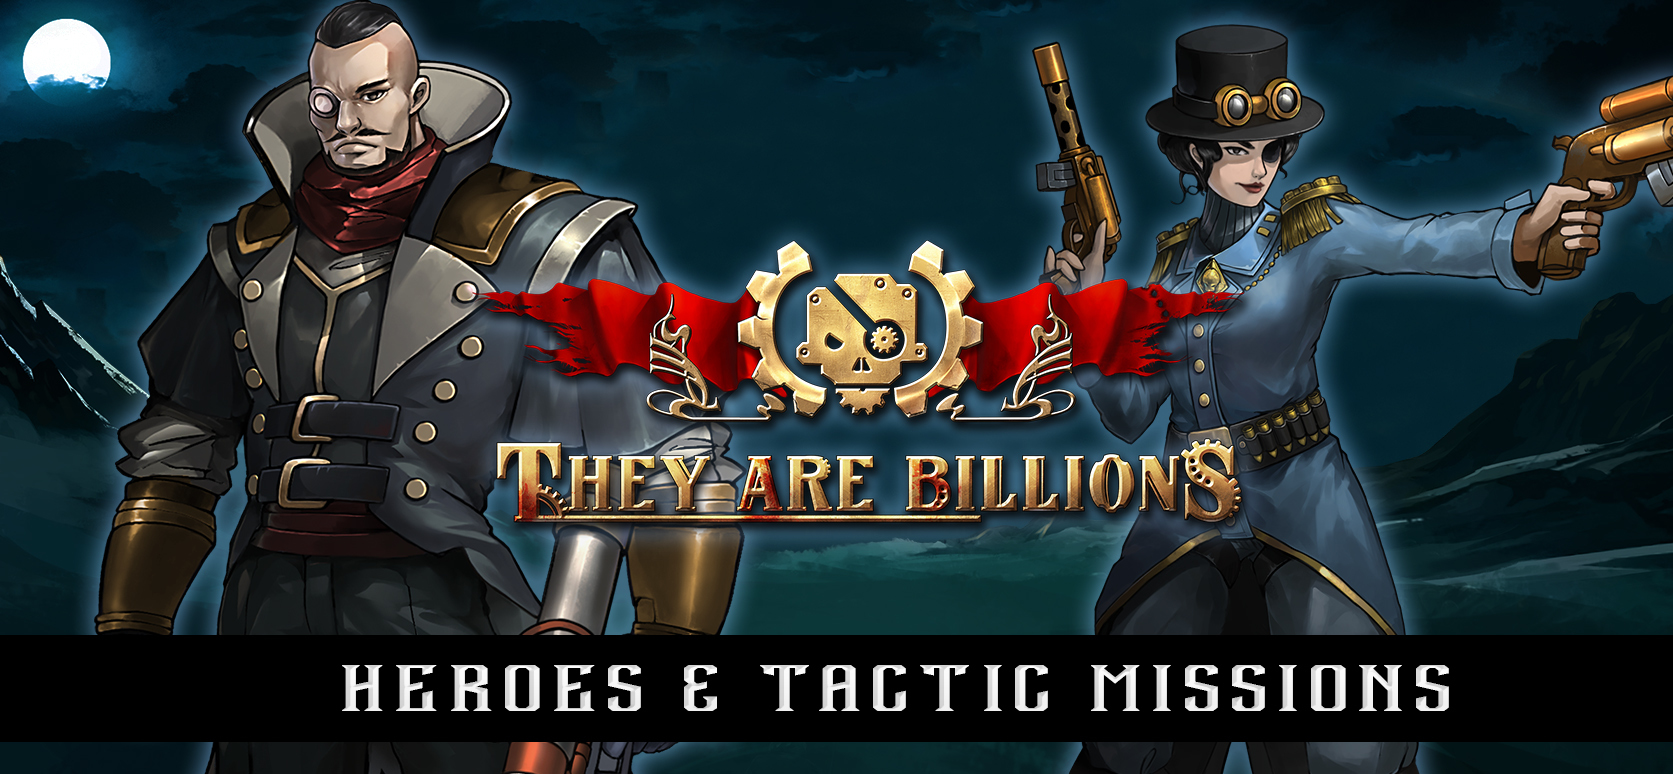 They Are Billions Update: Heroes & Tactic Missions